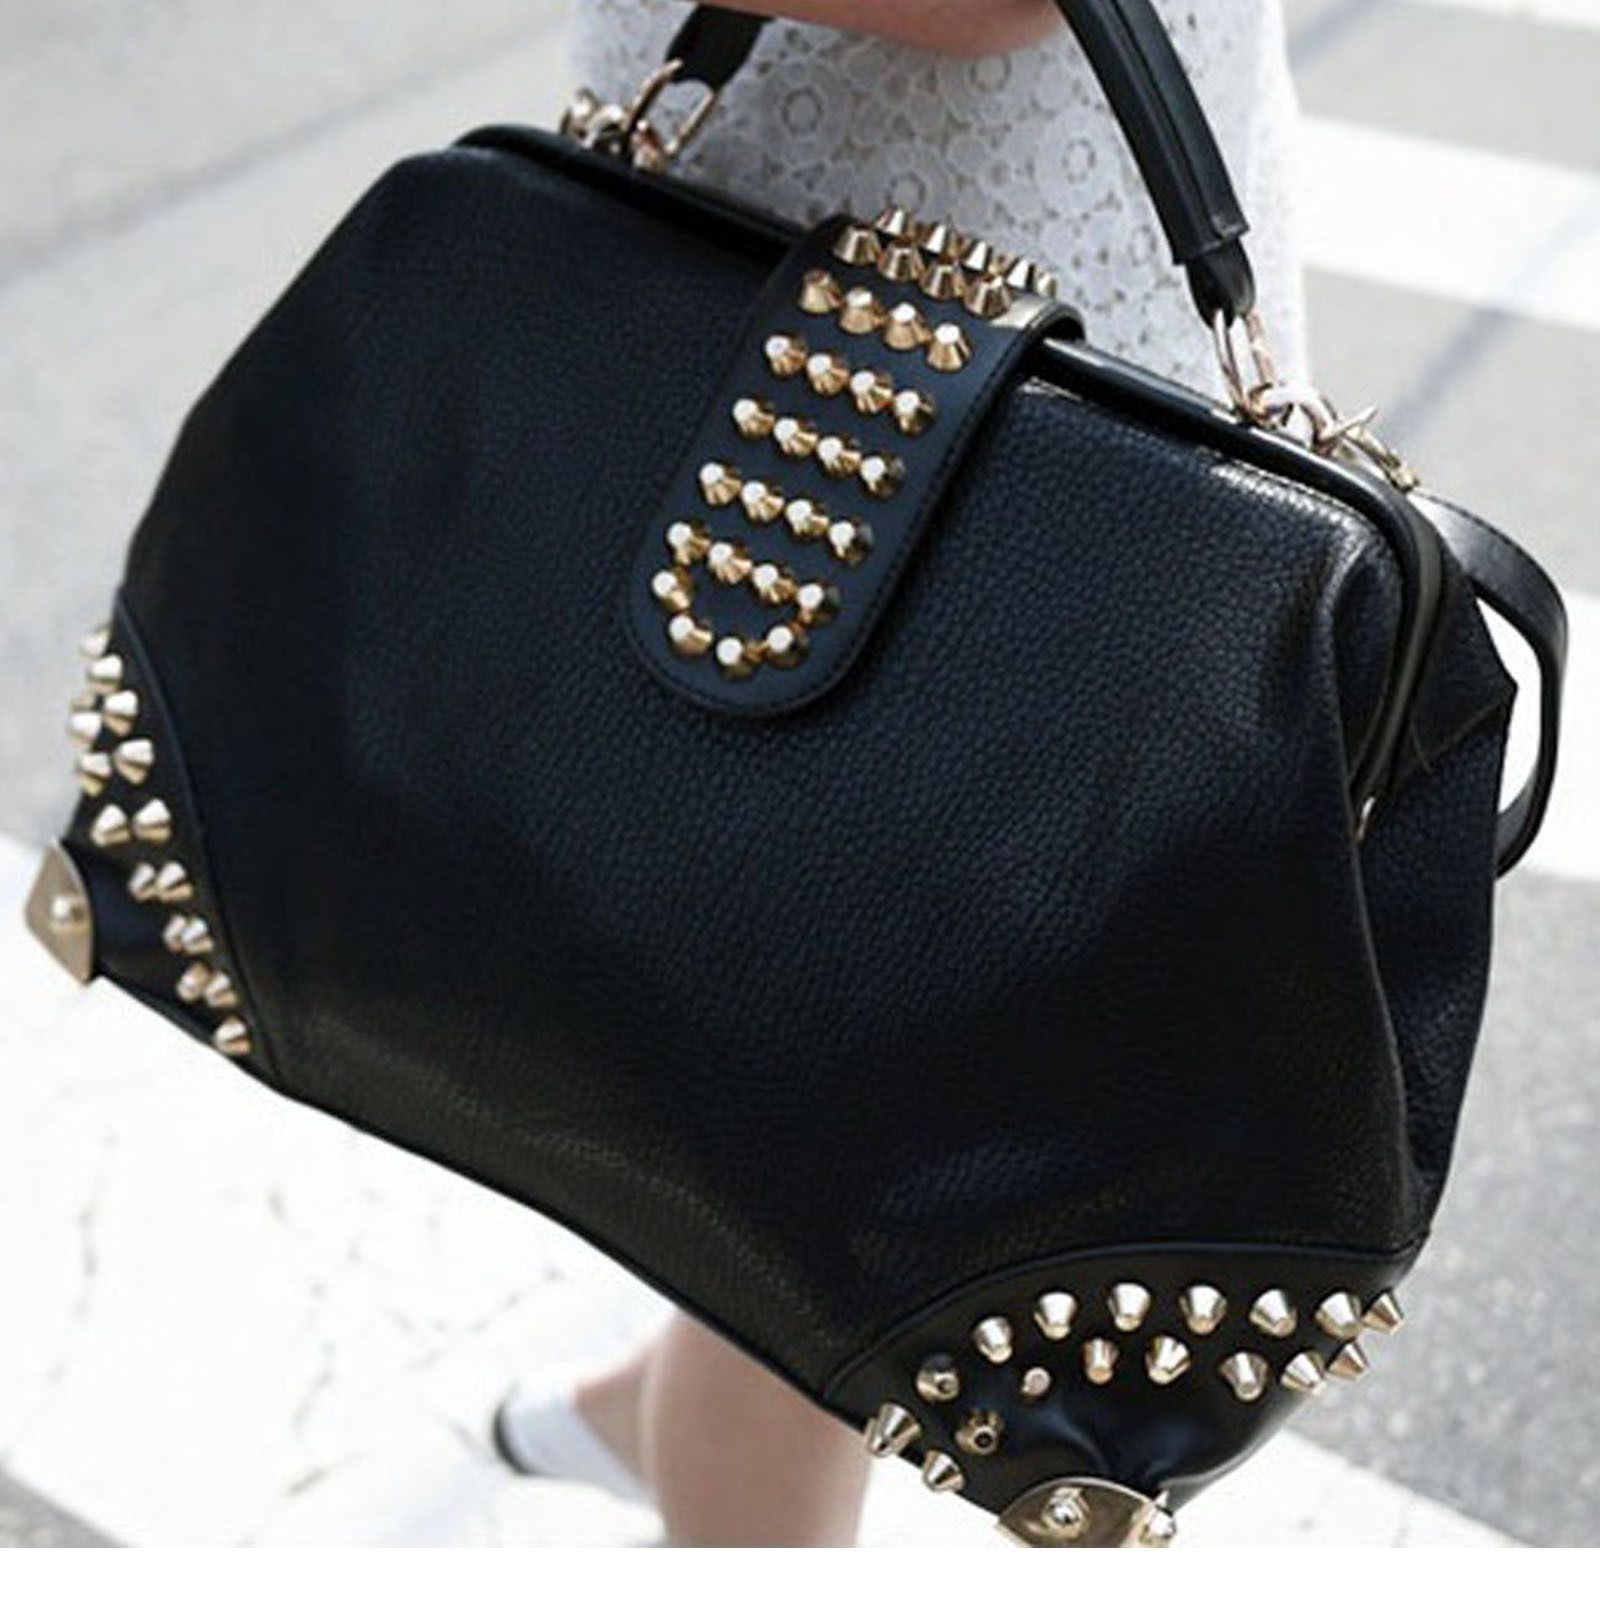 Women/'s Designer Handbags Ladies Stylish Celebrity Studded Clutch Purse